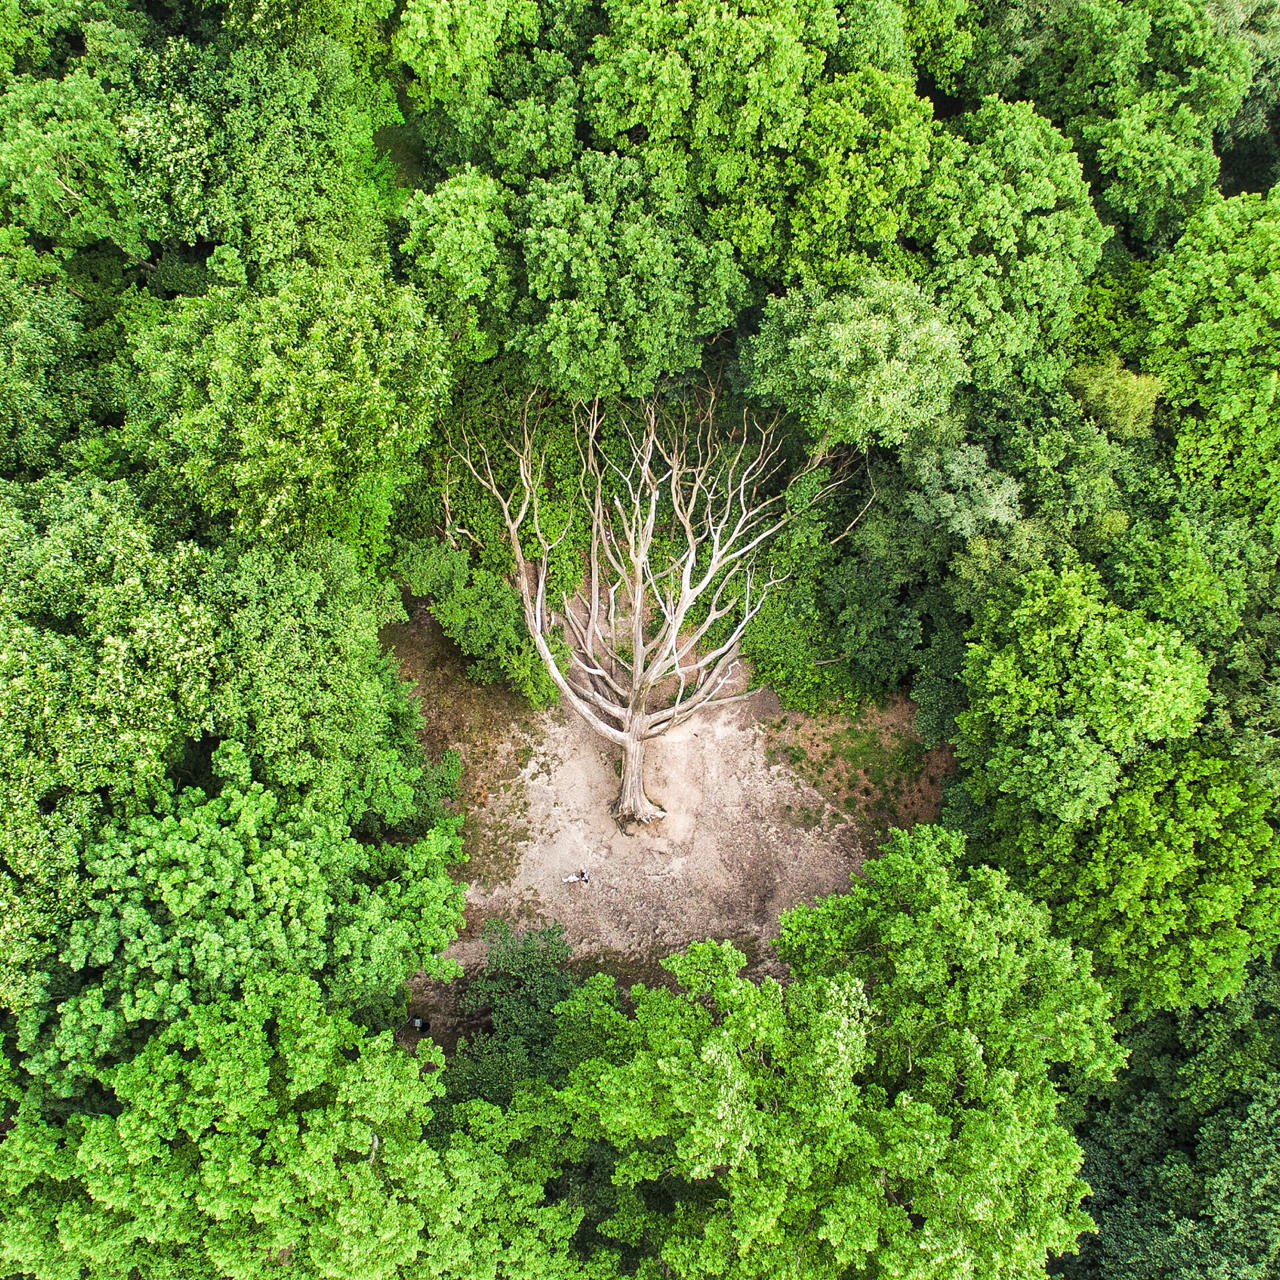 Check out this incredible shot of a fallen tree in Hampstead Heath. The park is located in North London and the expansive area, covering nearly 800 acres, offers a natural sanctuary from the bustling city. This tree was felled during a storm two winters ago, leaving a hole in the canopy where it once stood.  Photo by Kit Oates